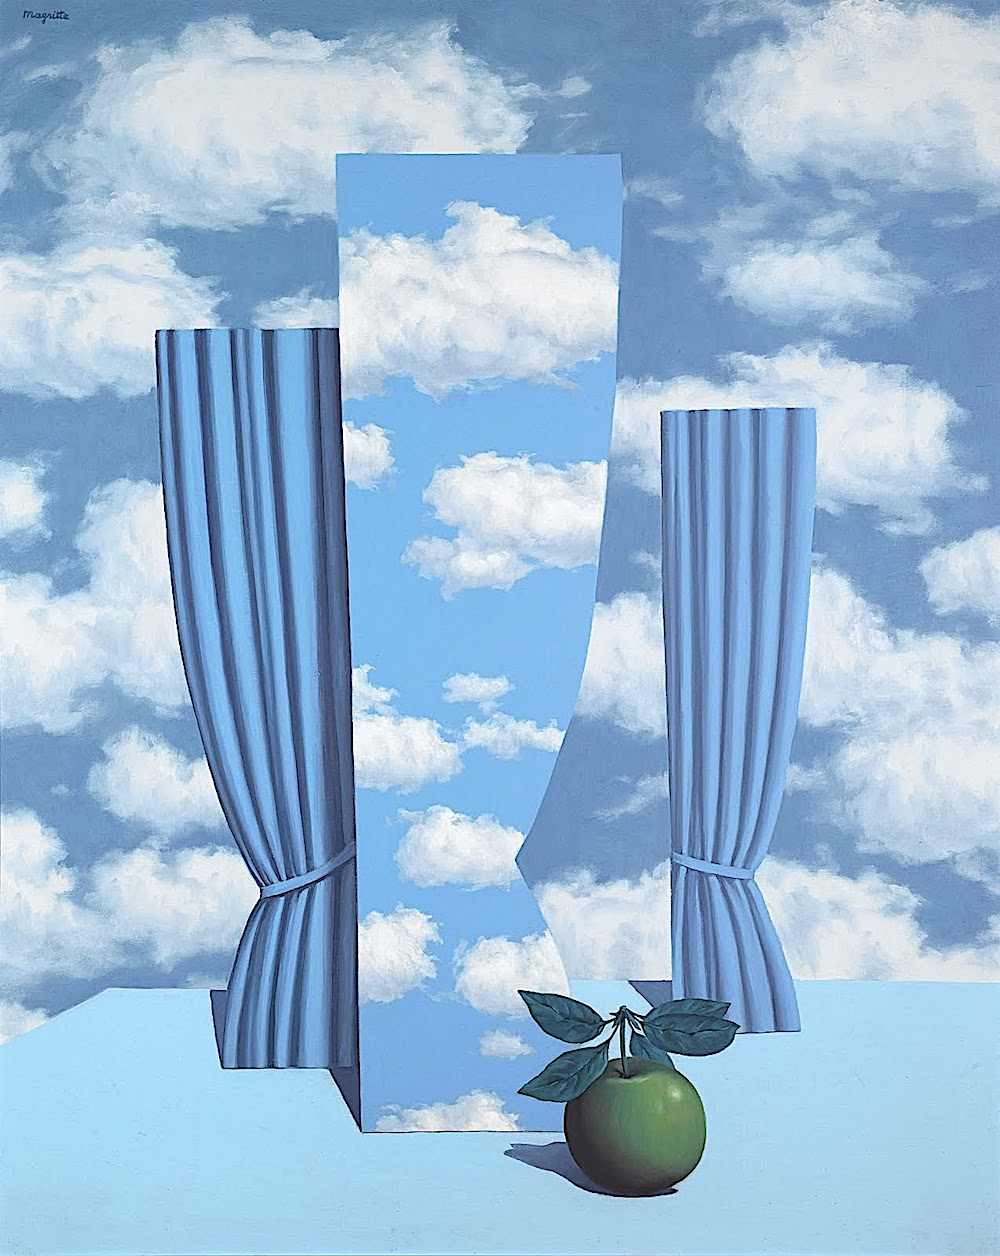 a René Magritte painting of apples and window curtains